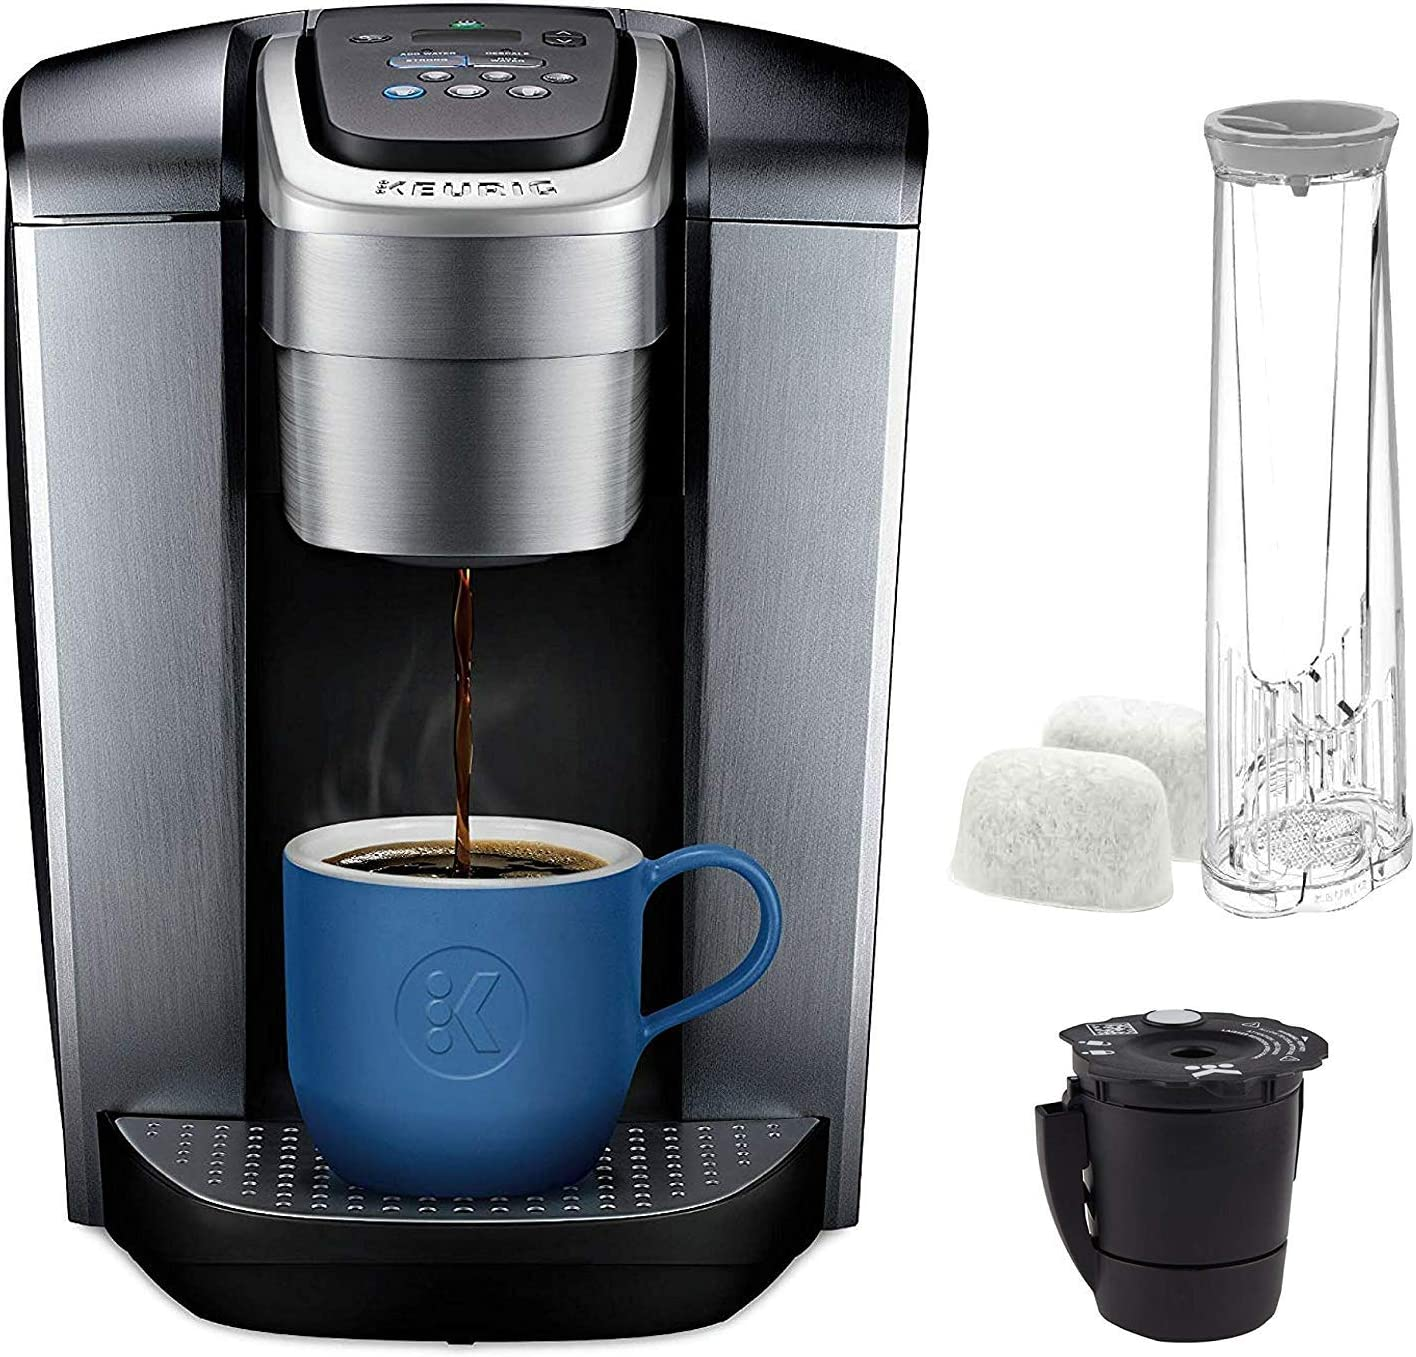 Amazon.com: Keurig C K-Elite Maker, Single Serve K-Cup Pod Brewer, with  Iced Coffee Capability, Extra Included, 75oz, Brushed Silver Plus Filter  Bundle: Home & Kitchen